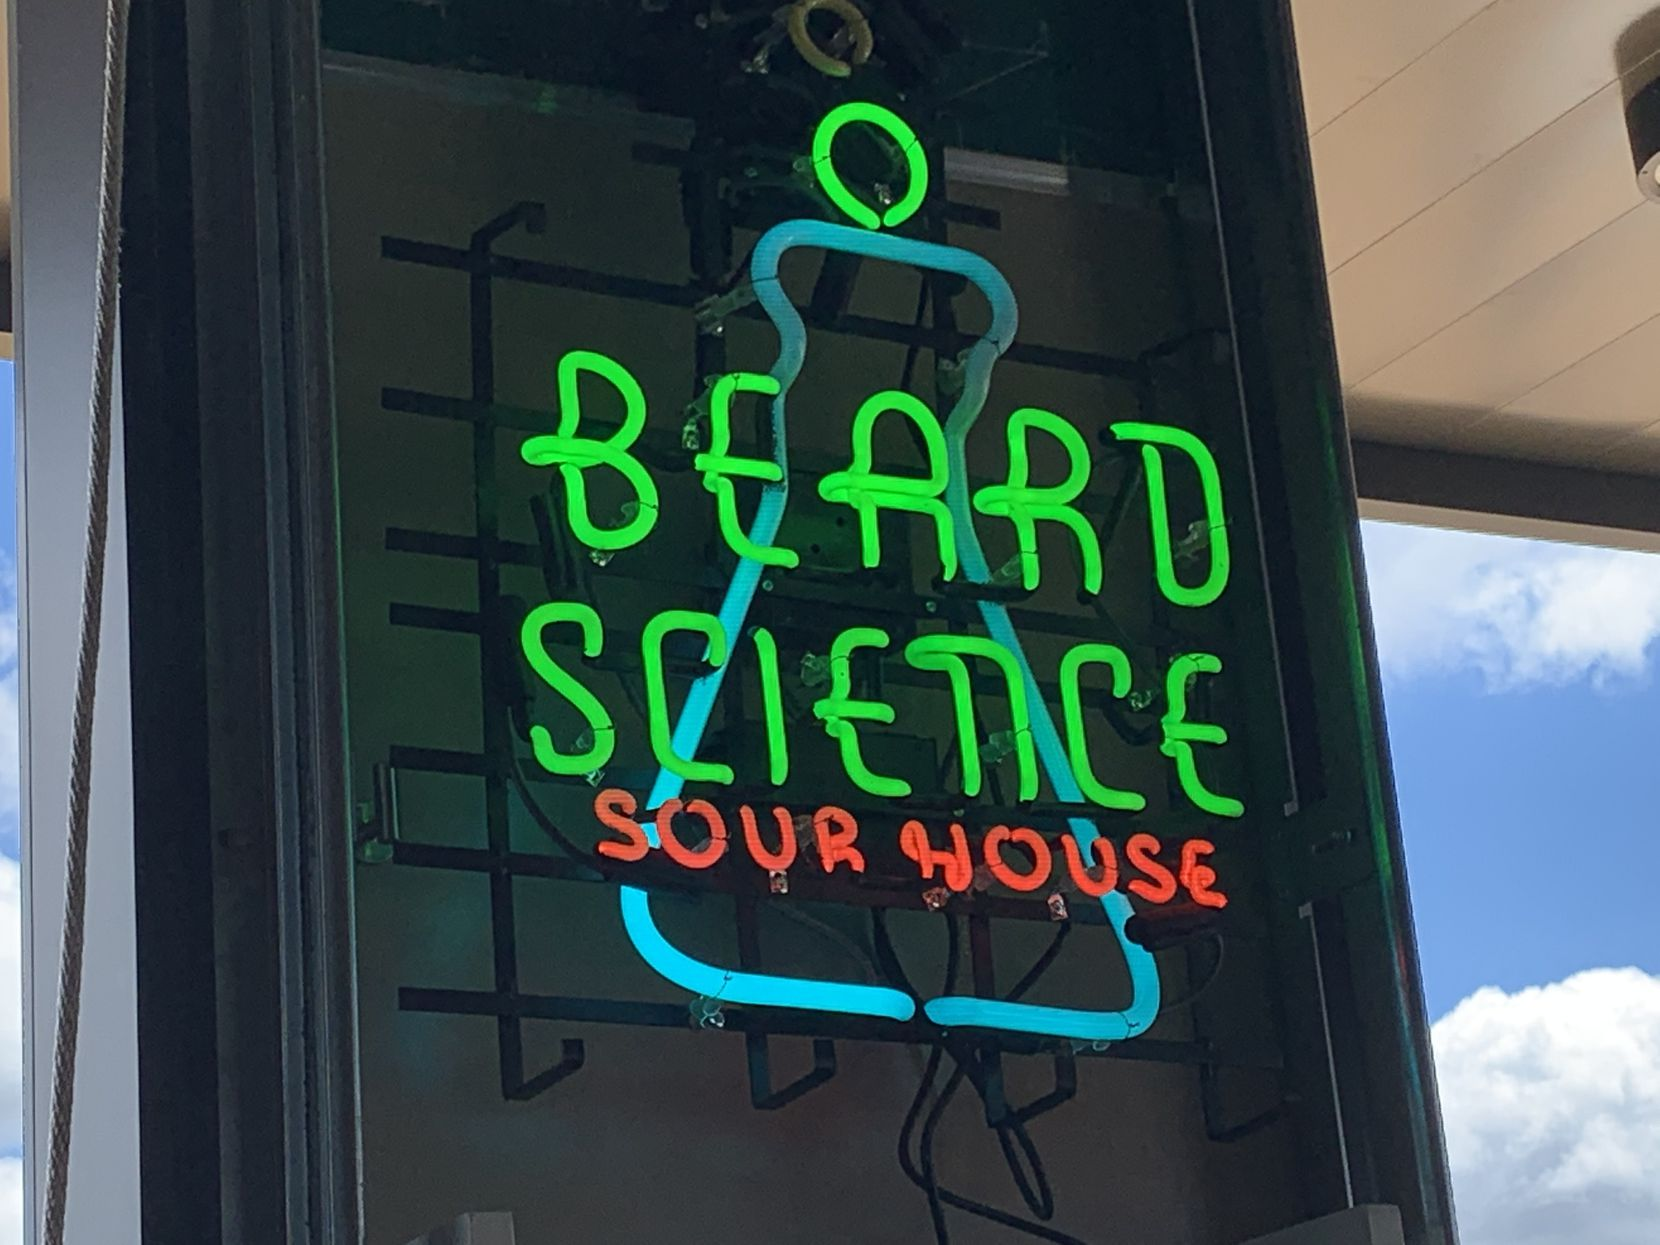 Beard Science Sour House in The Colony offers only sour beers.